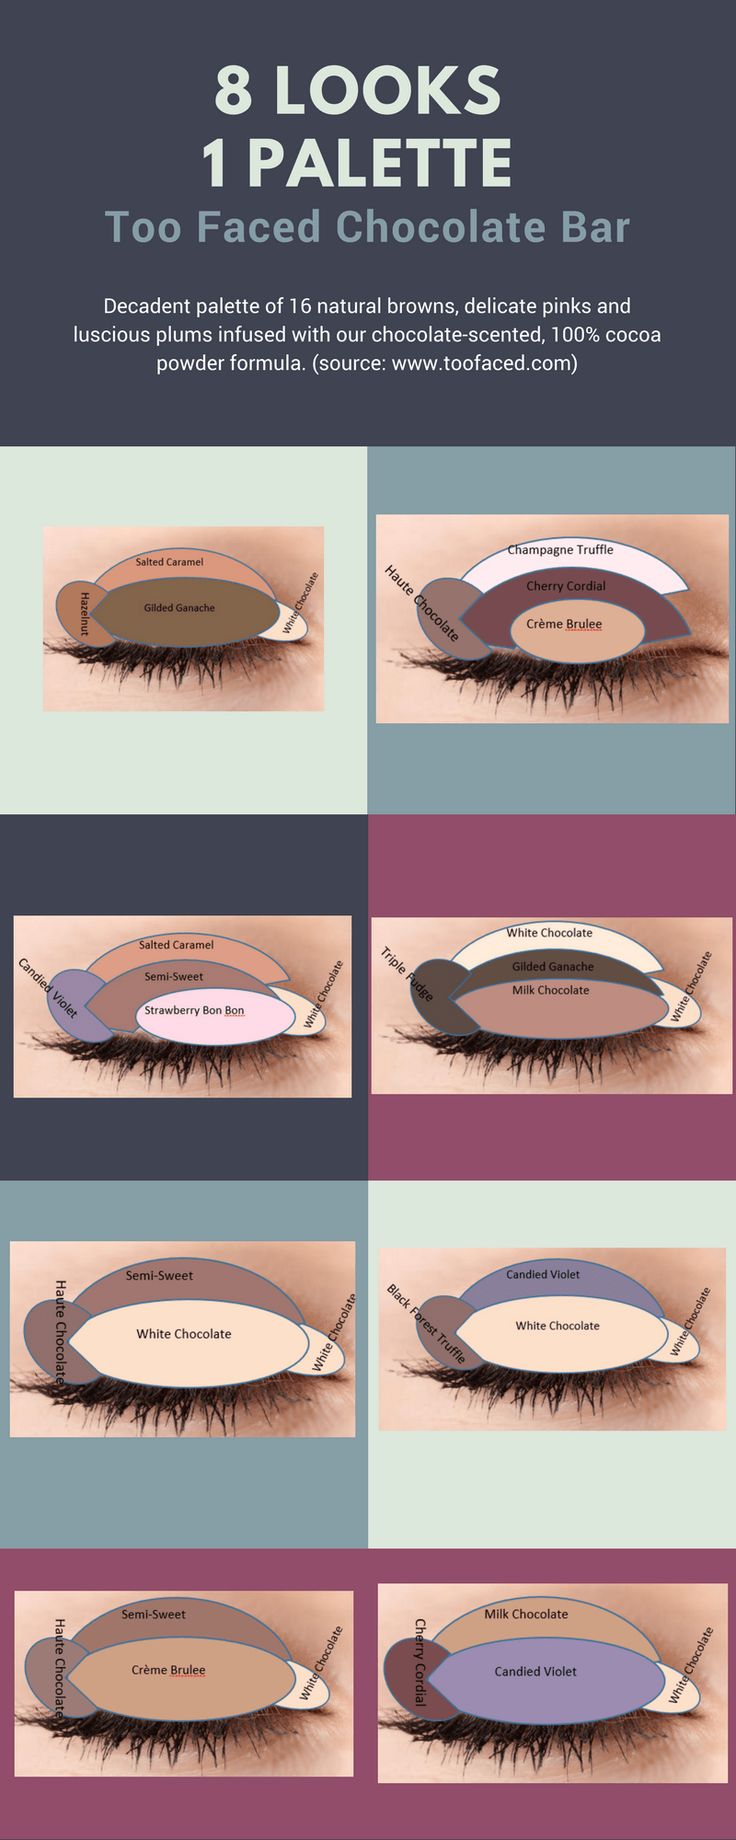 Check out my other 8 looks 1 palette –